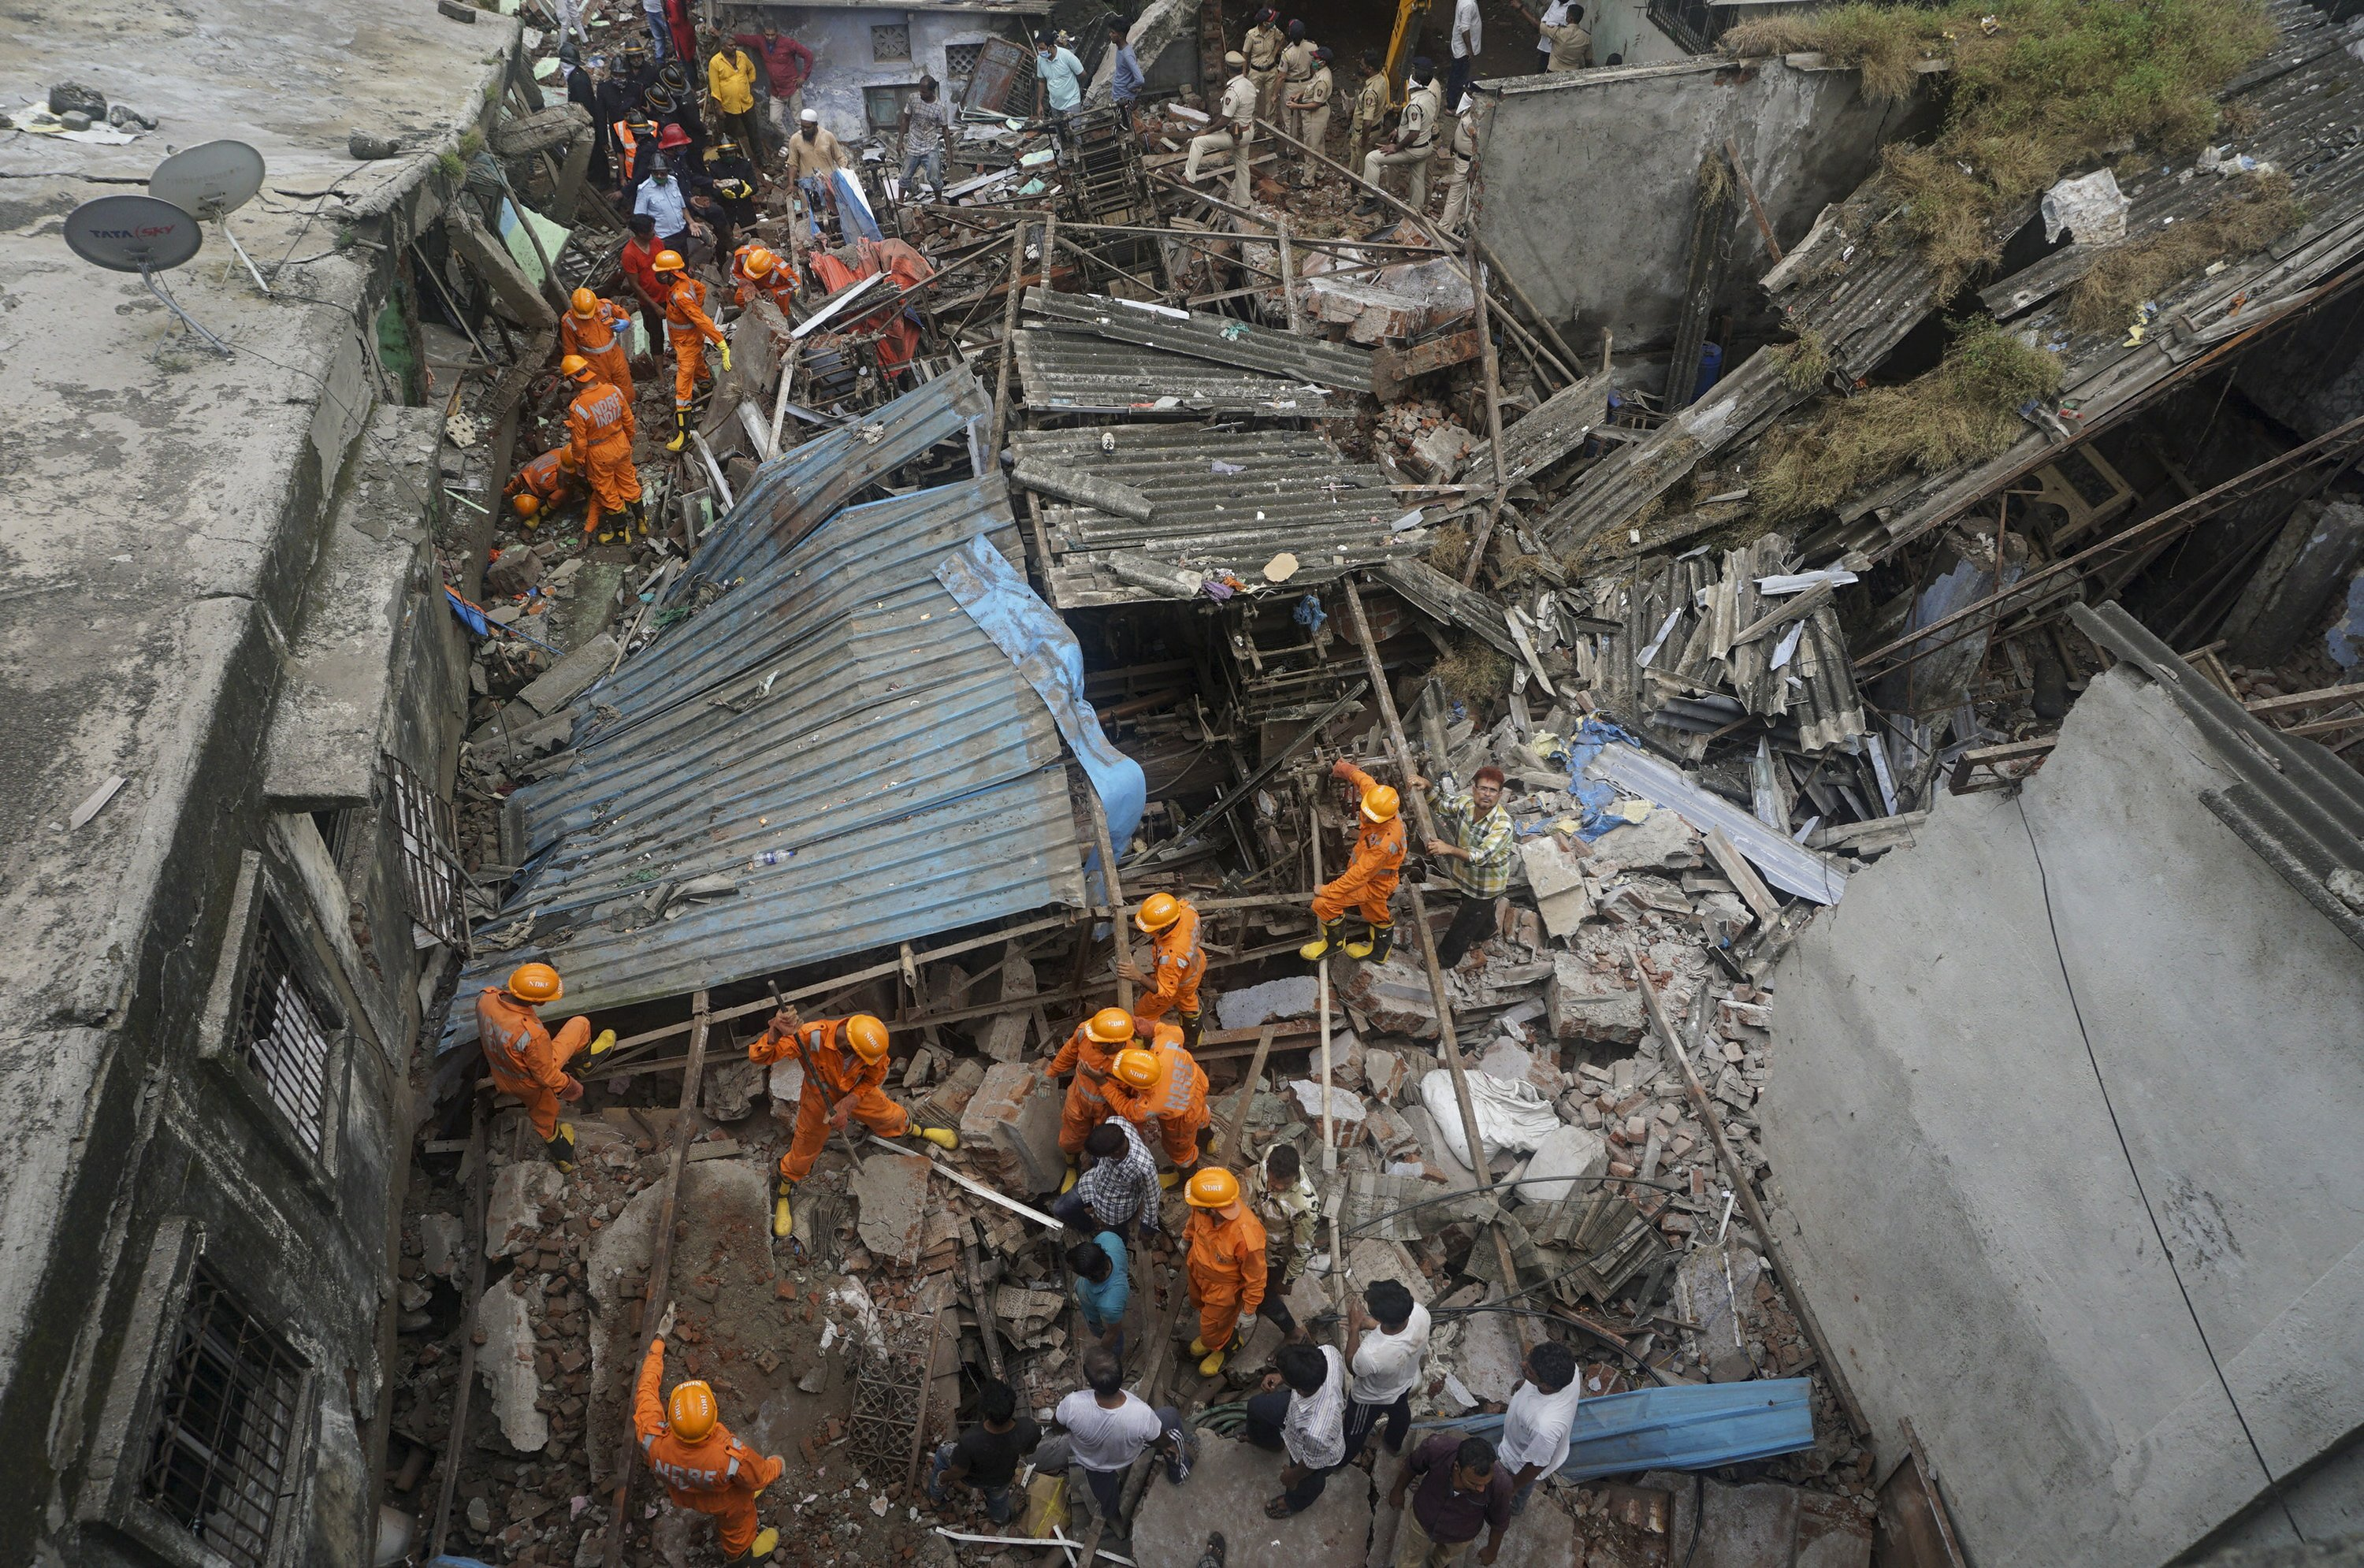 At least 8 dead in residential building collapse in India